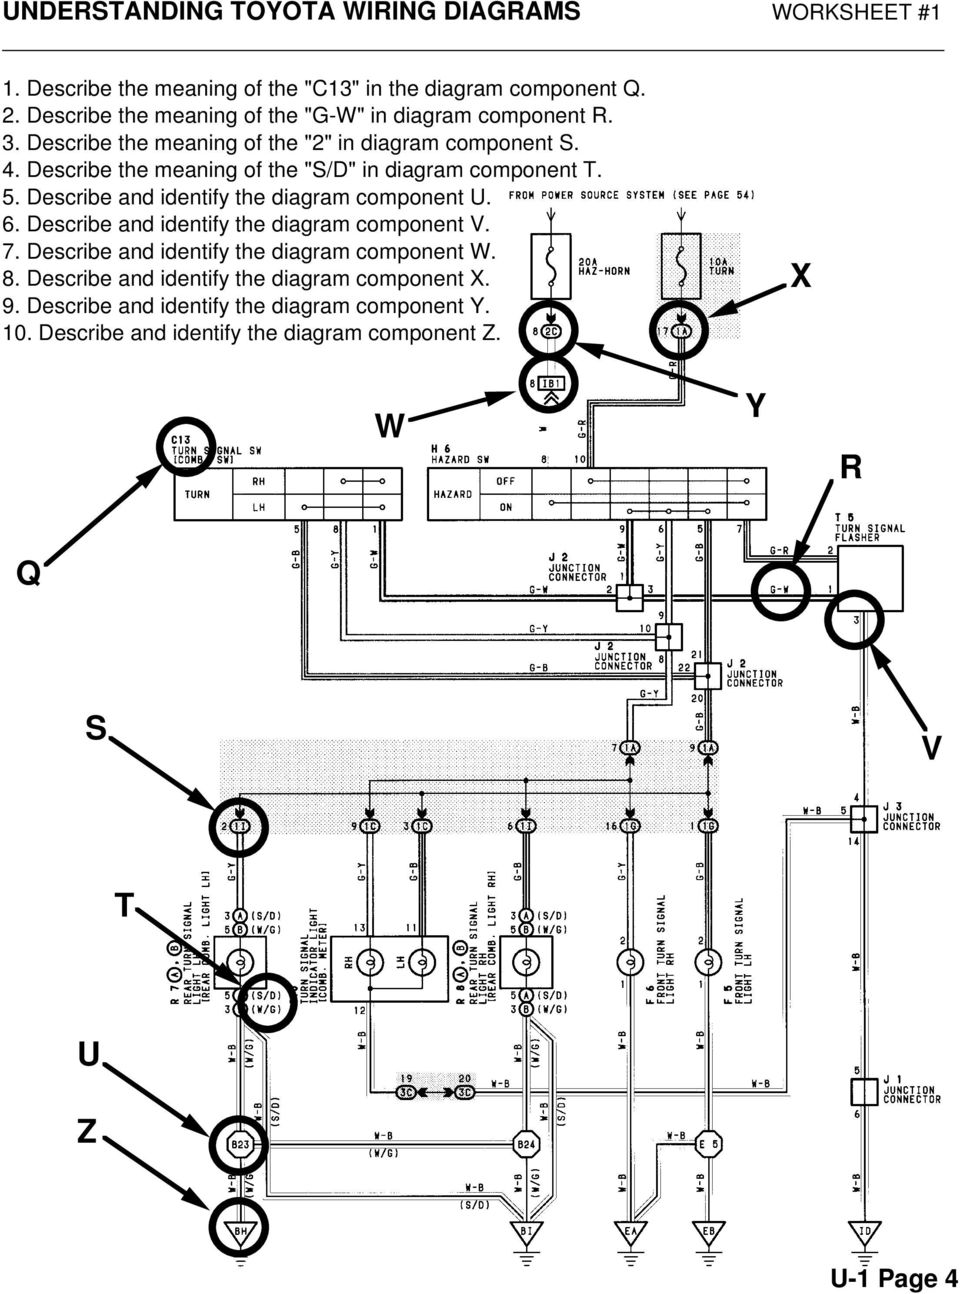 hight resolution of describe the meaning of the s d in diagram component t 5 7 understanding toyota wiring diagrams worksheet